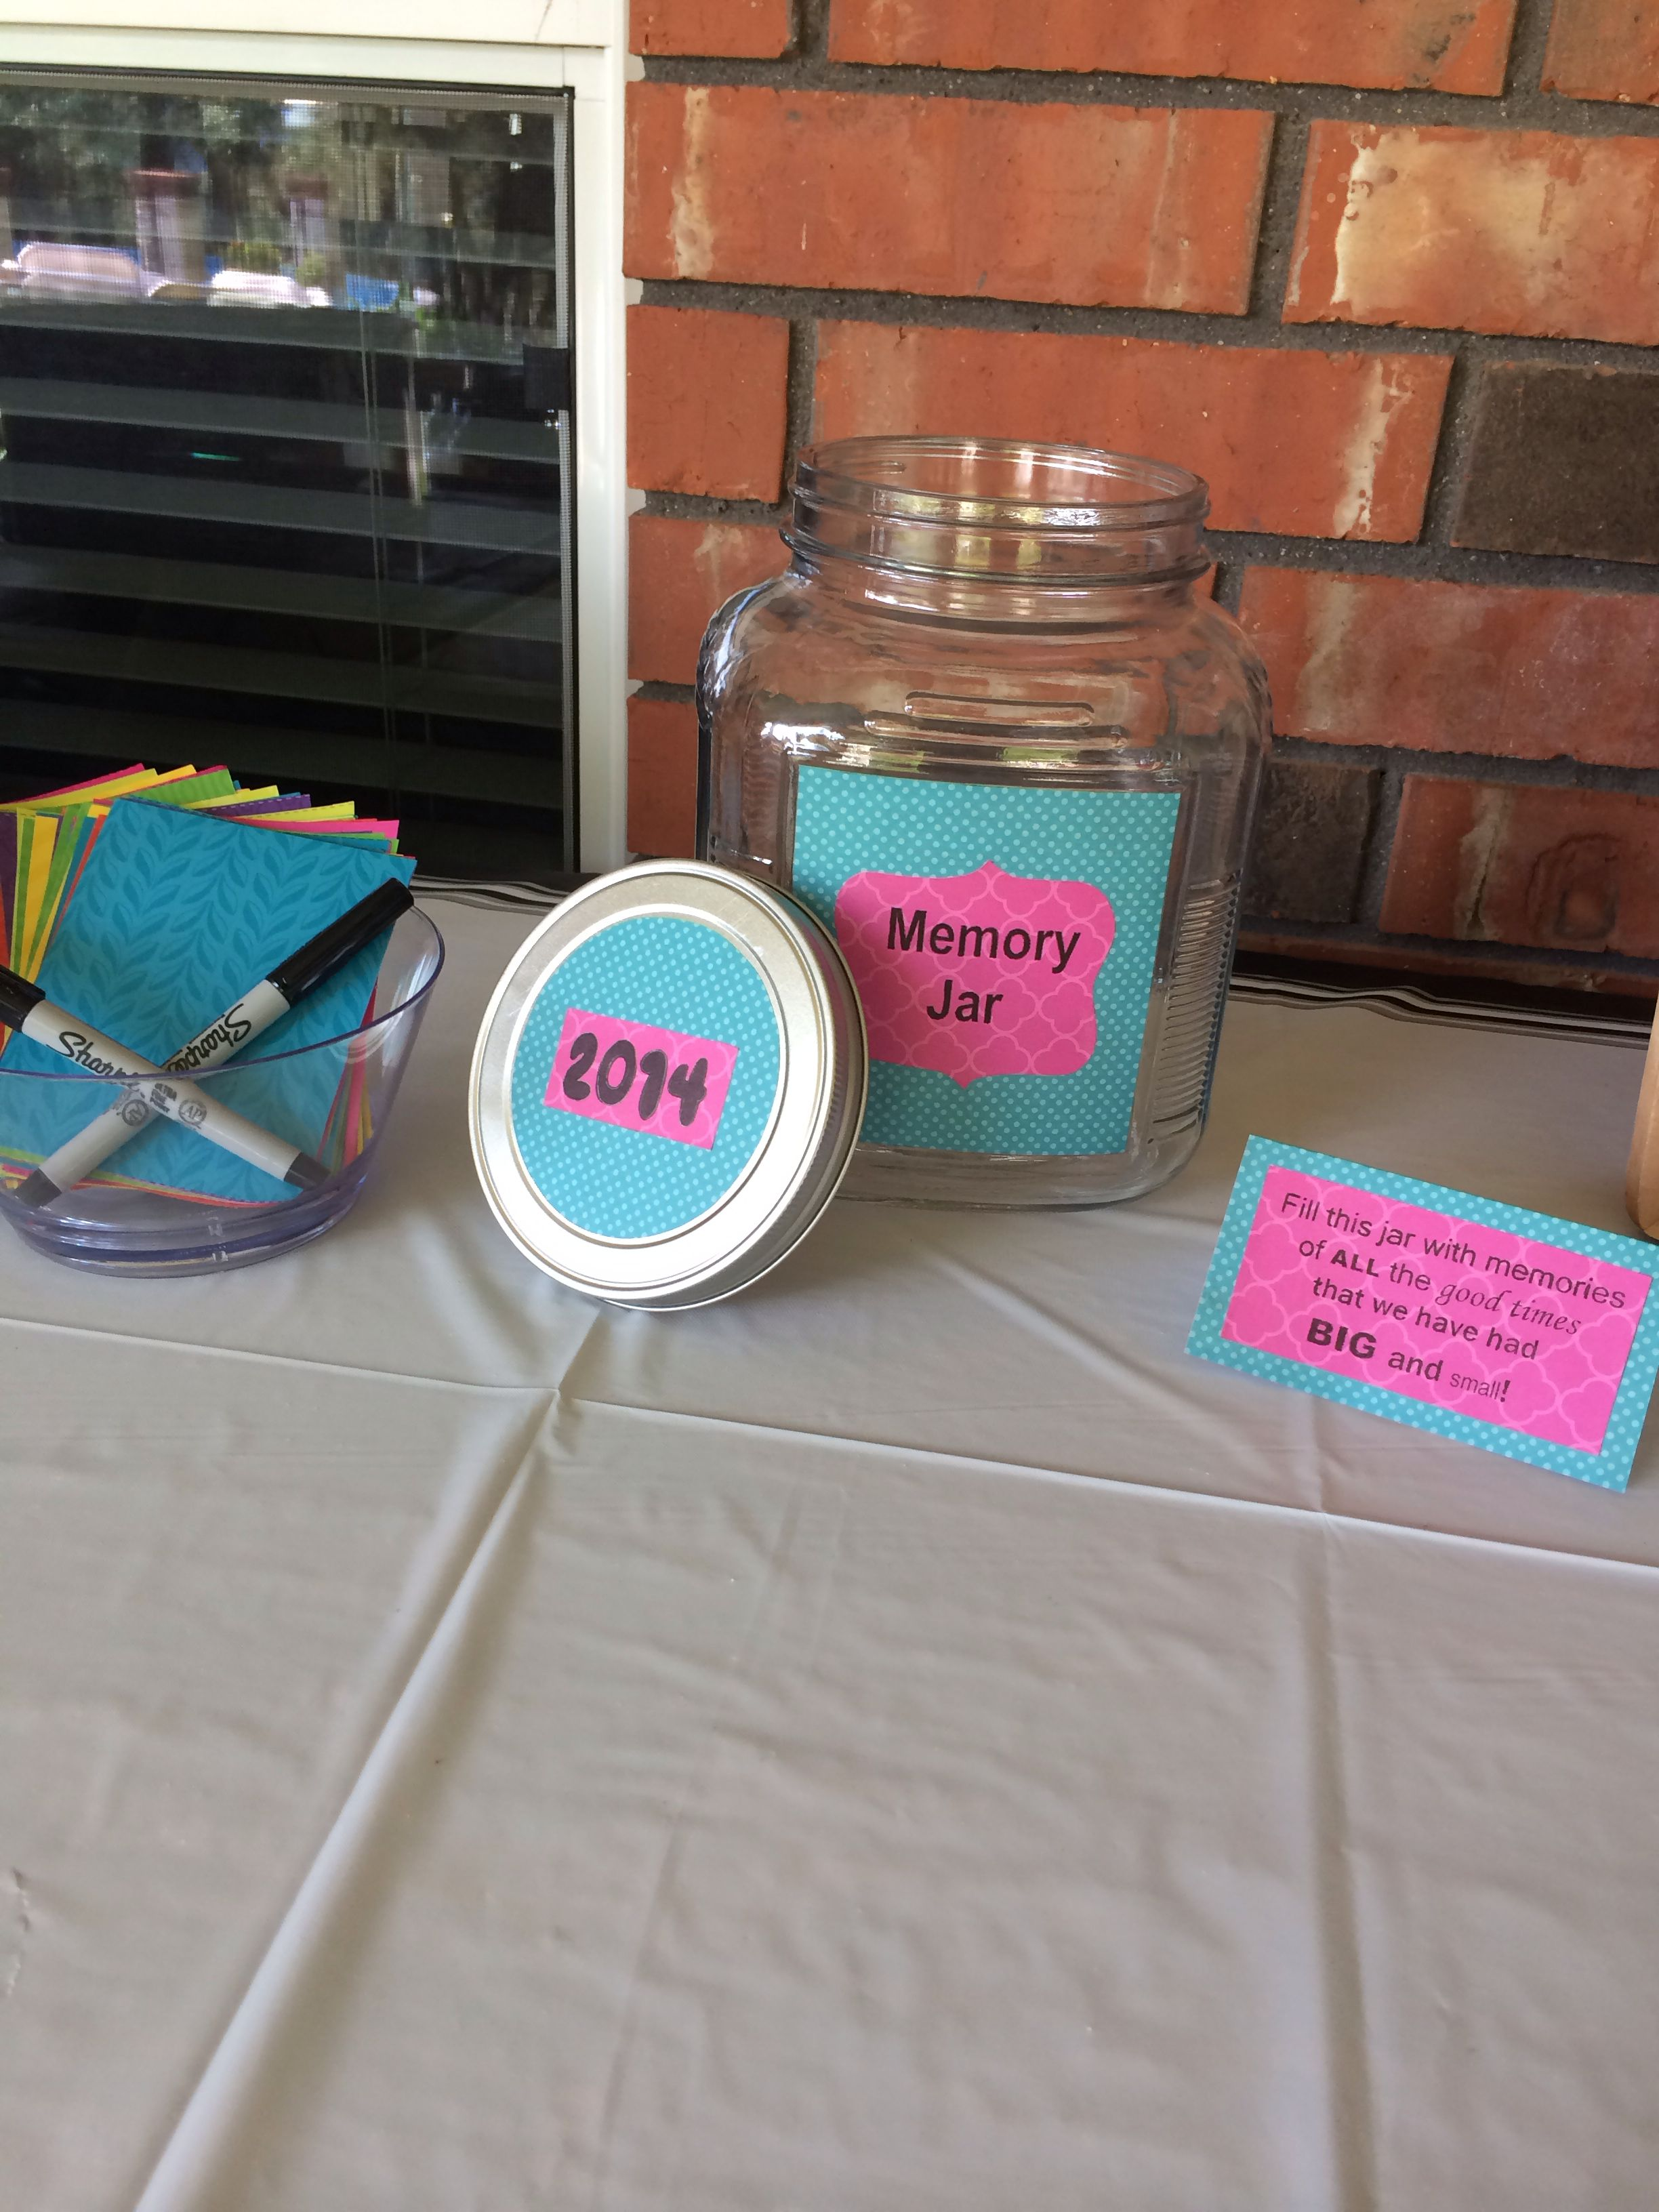 Made This Memory Jar For My Grad Party And It Was A Success Grad Parties Memory Jar Graduation Party